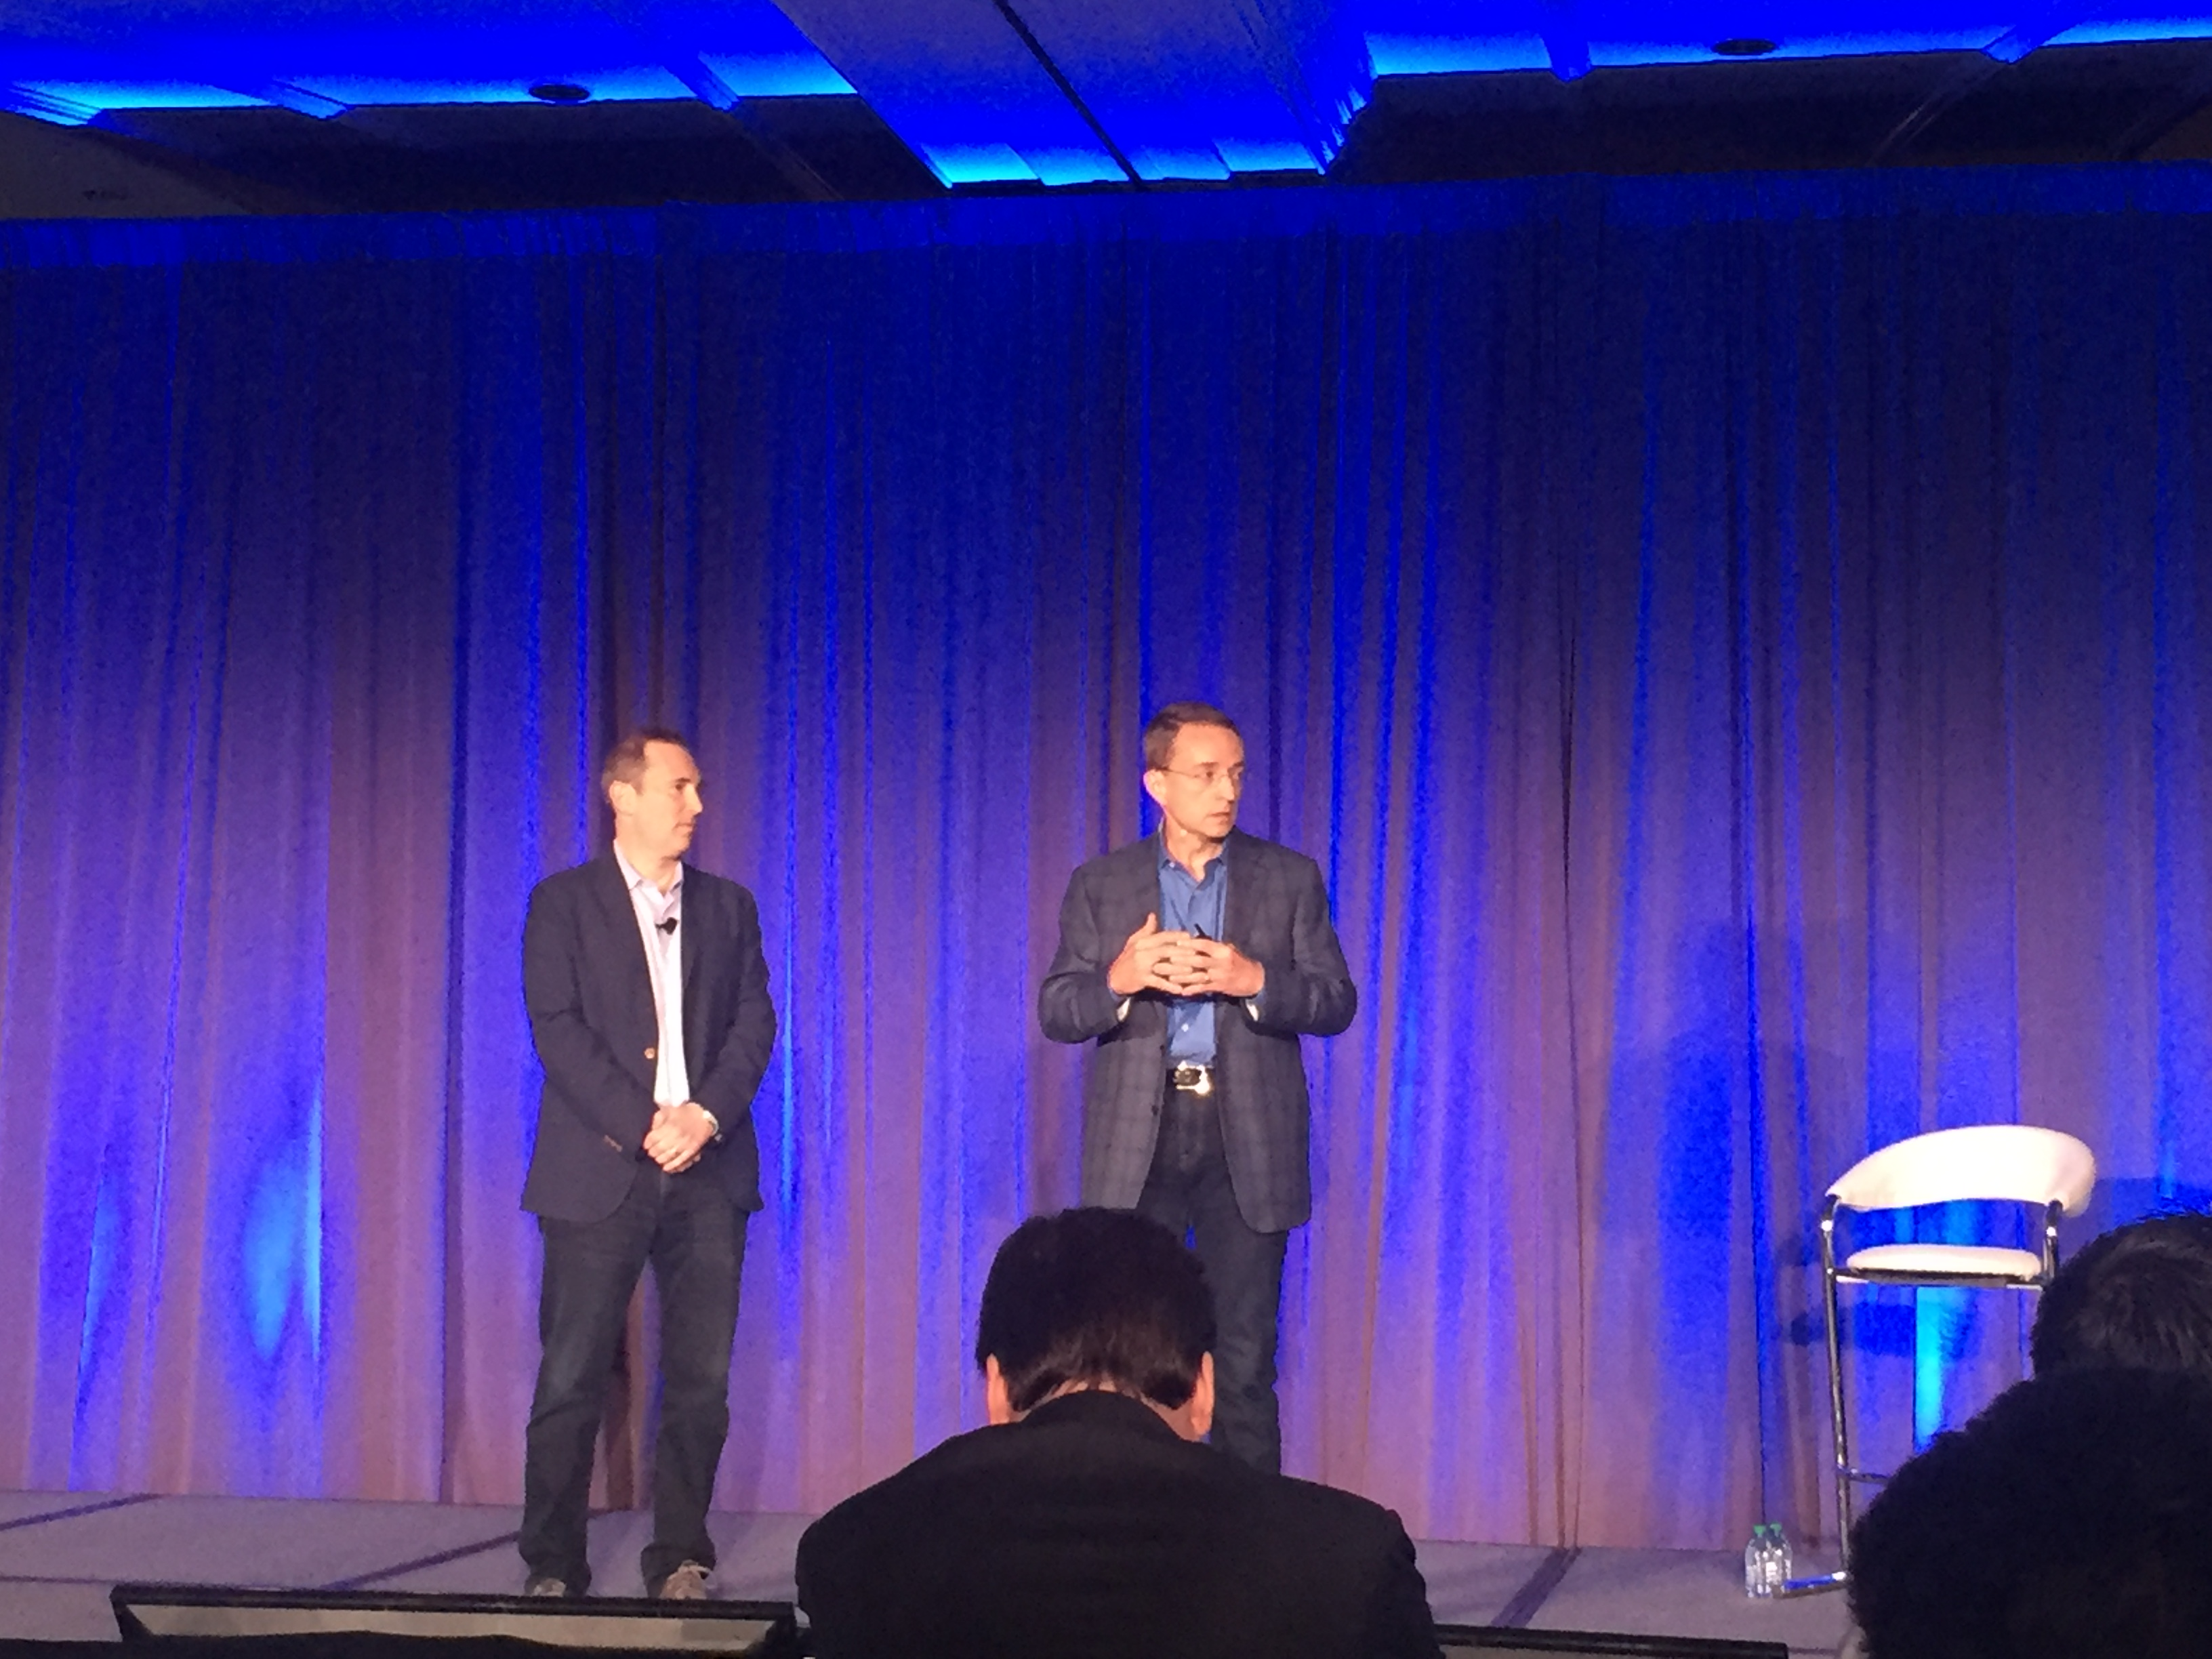 Amazon Web Services CEO Andy Jassy and VMware CEO Pat Gelsinger